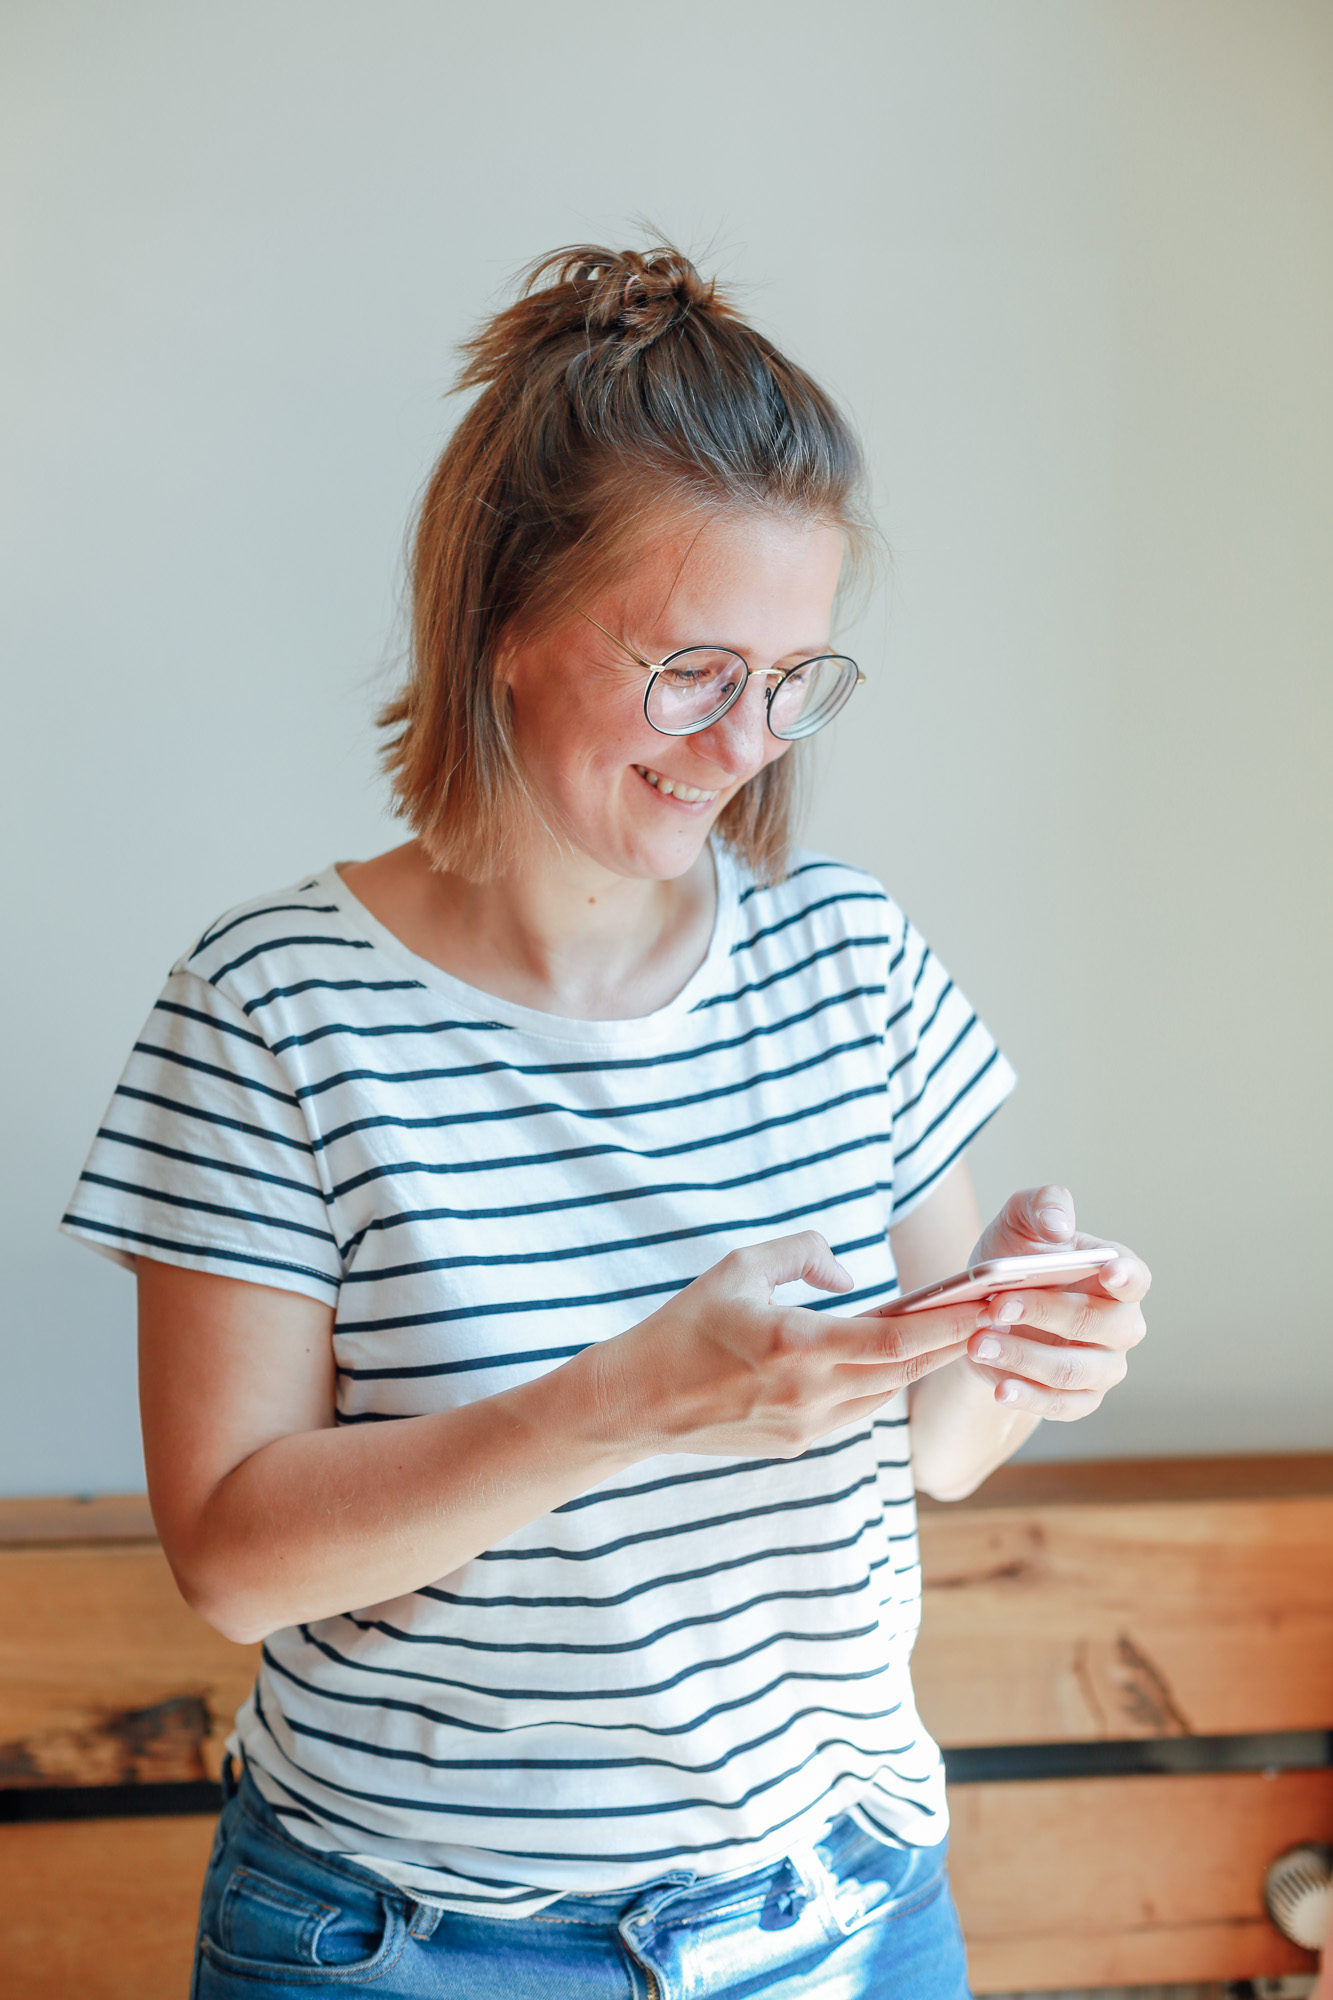 Mirjam Kilter mit Iphone in der Hand